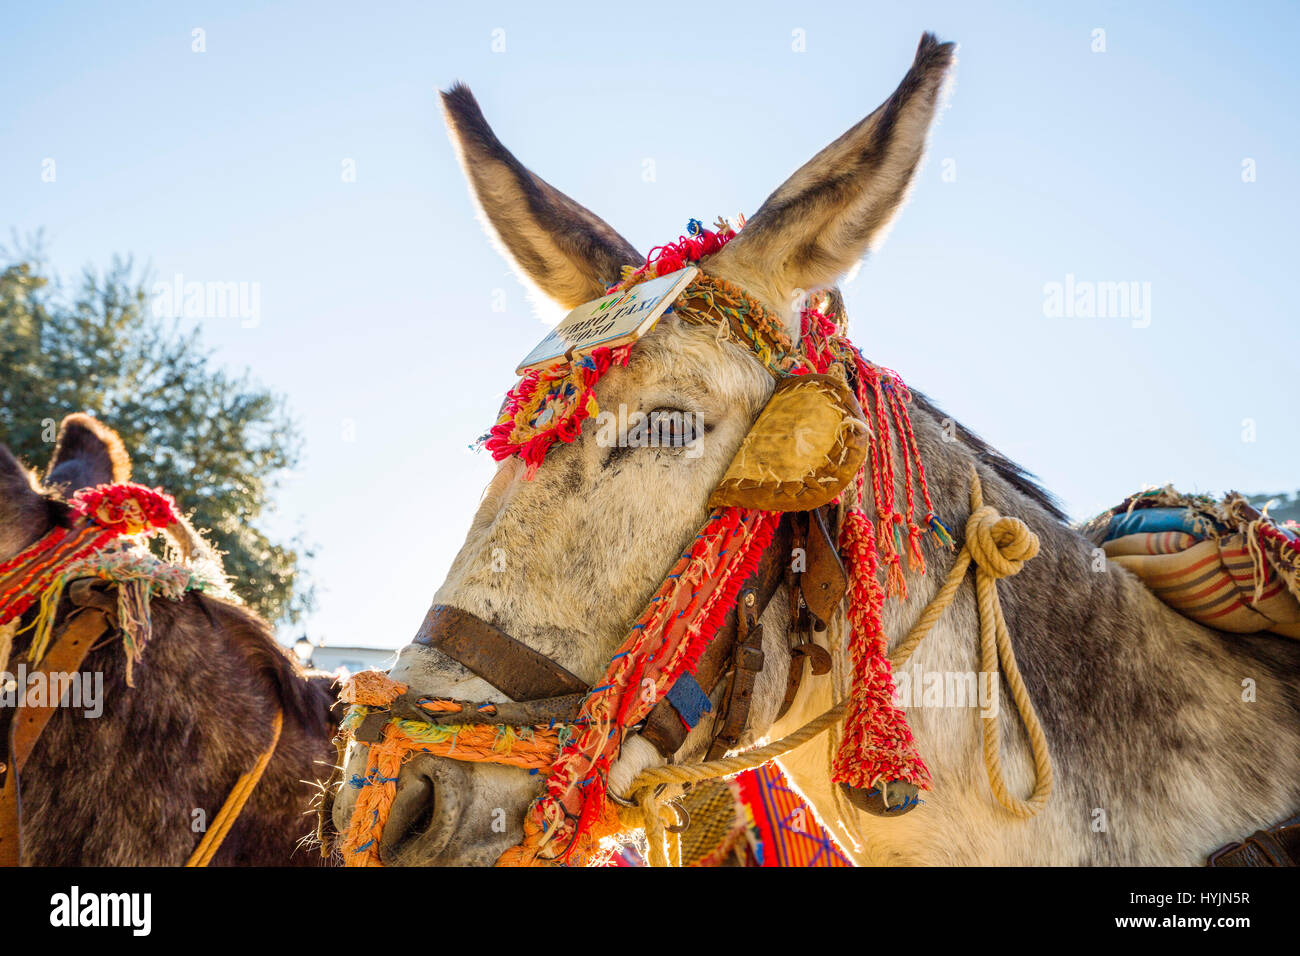 Donkey Taxi, white village of Mijas. Malaga province Costa del Sol. Andalusia Southern Spain, Europe - Stock Image